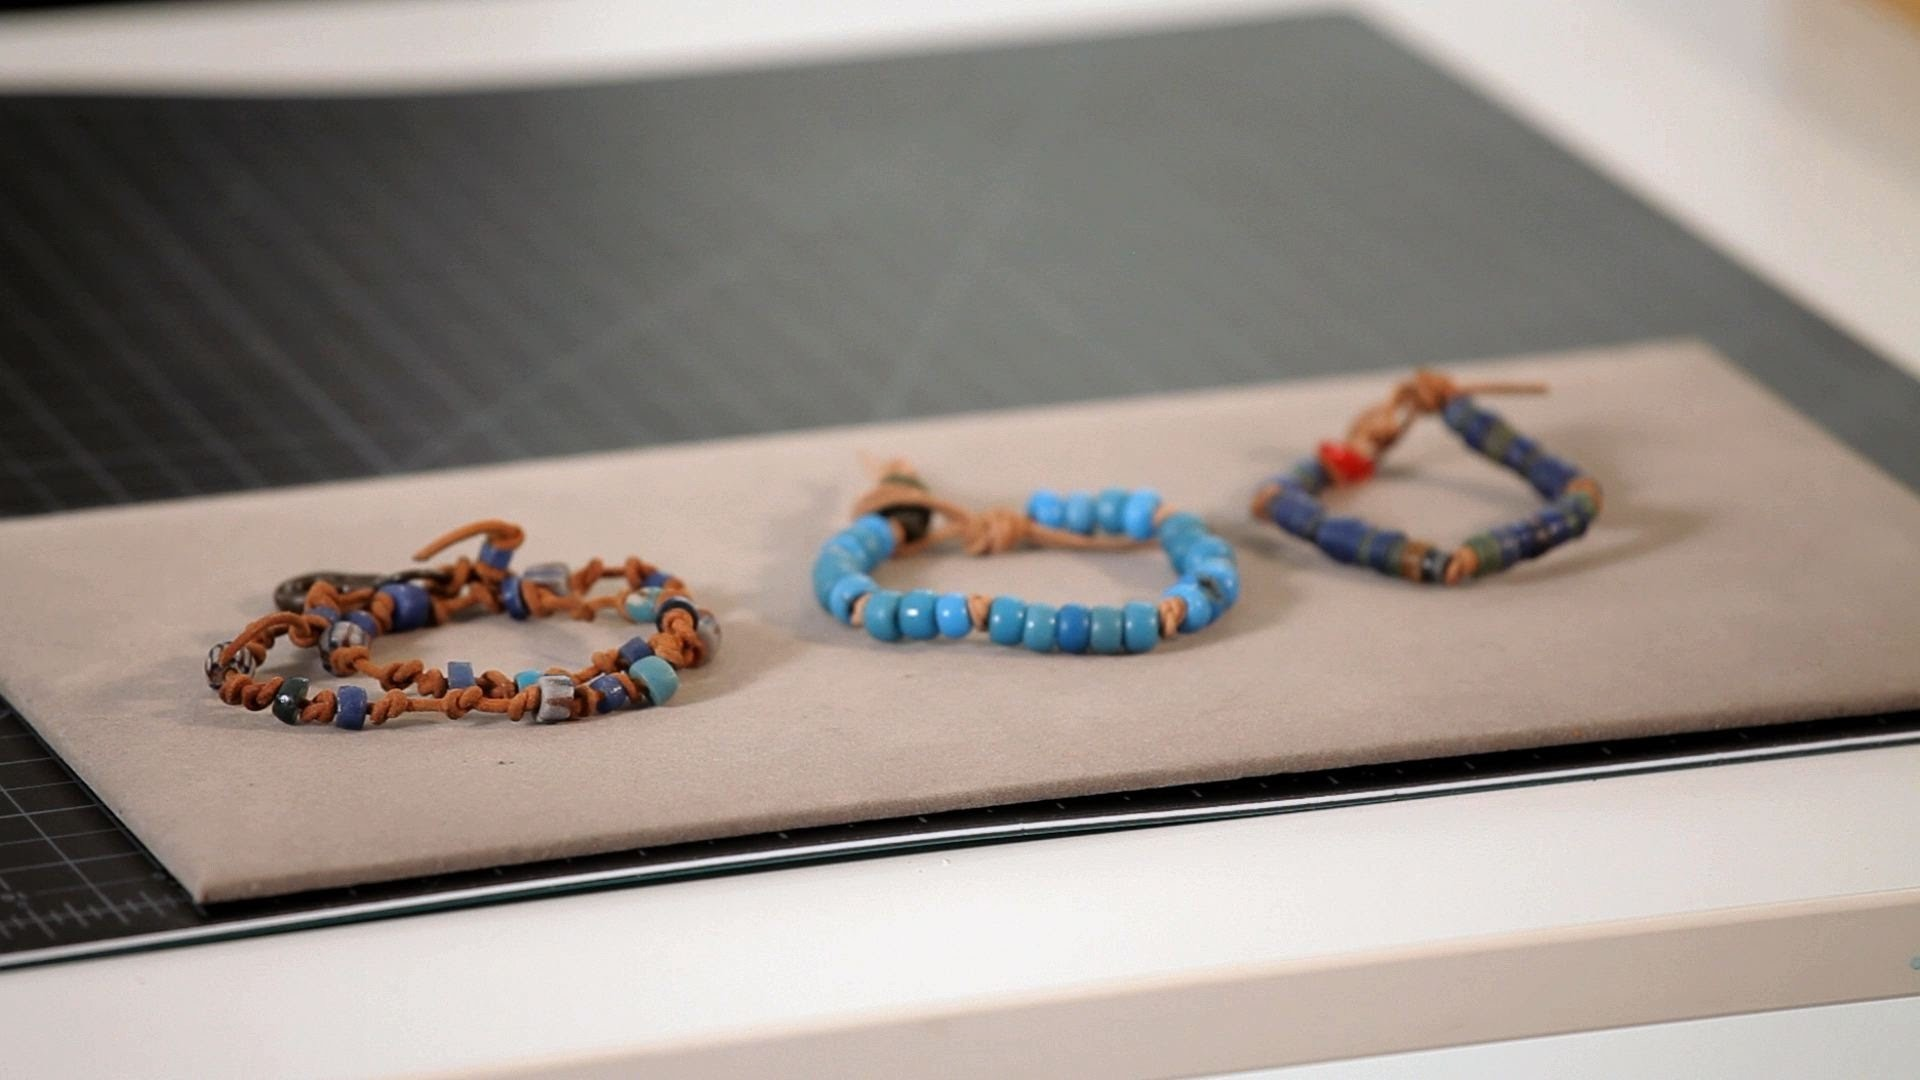 How to Make Leather Bracelet w. Trade Beads   Making Jewelry